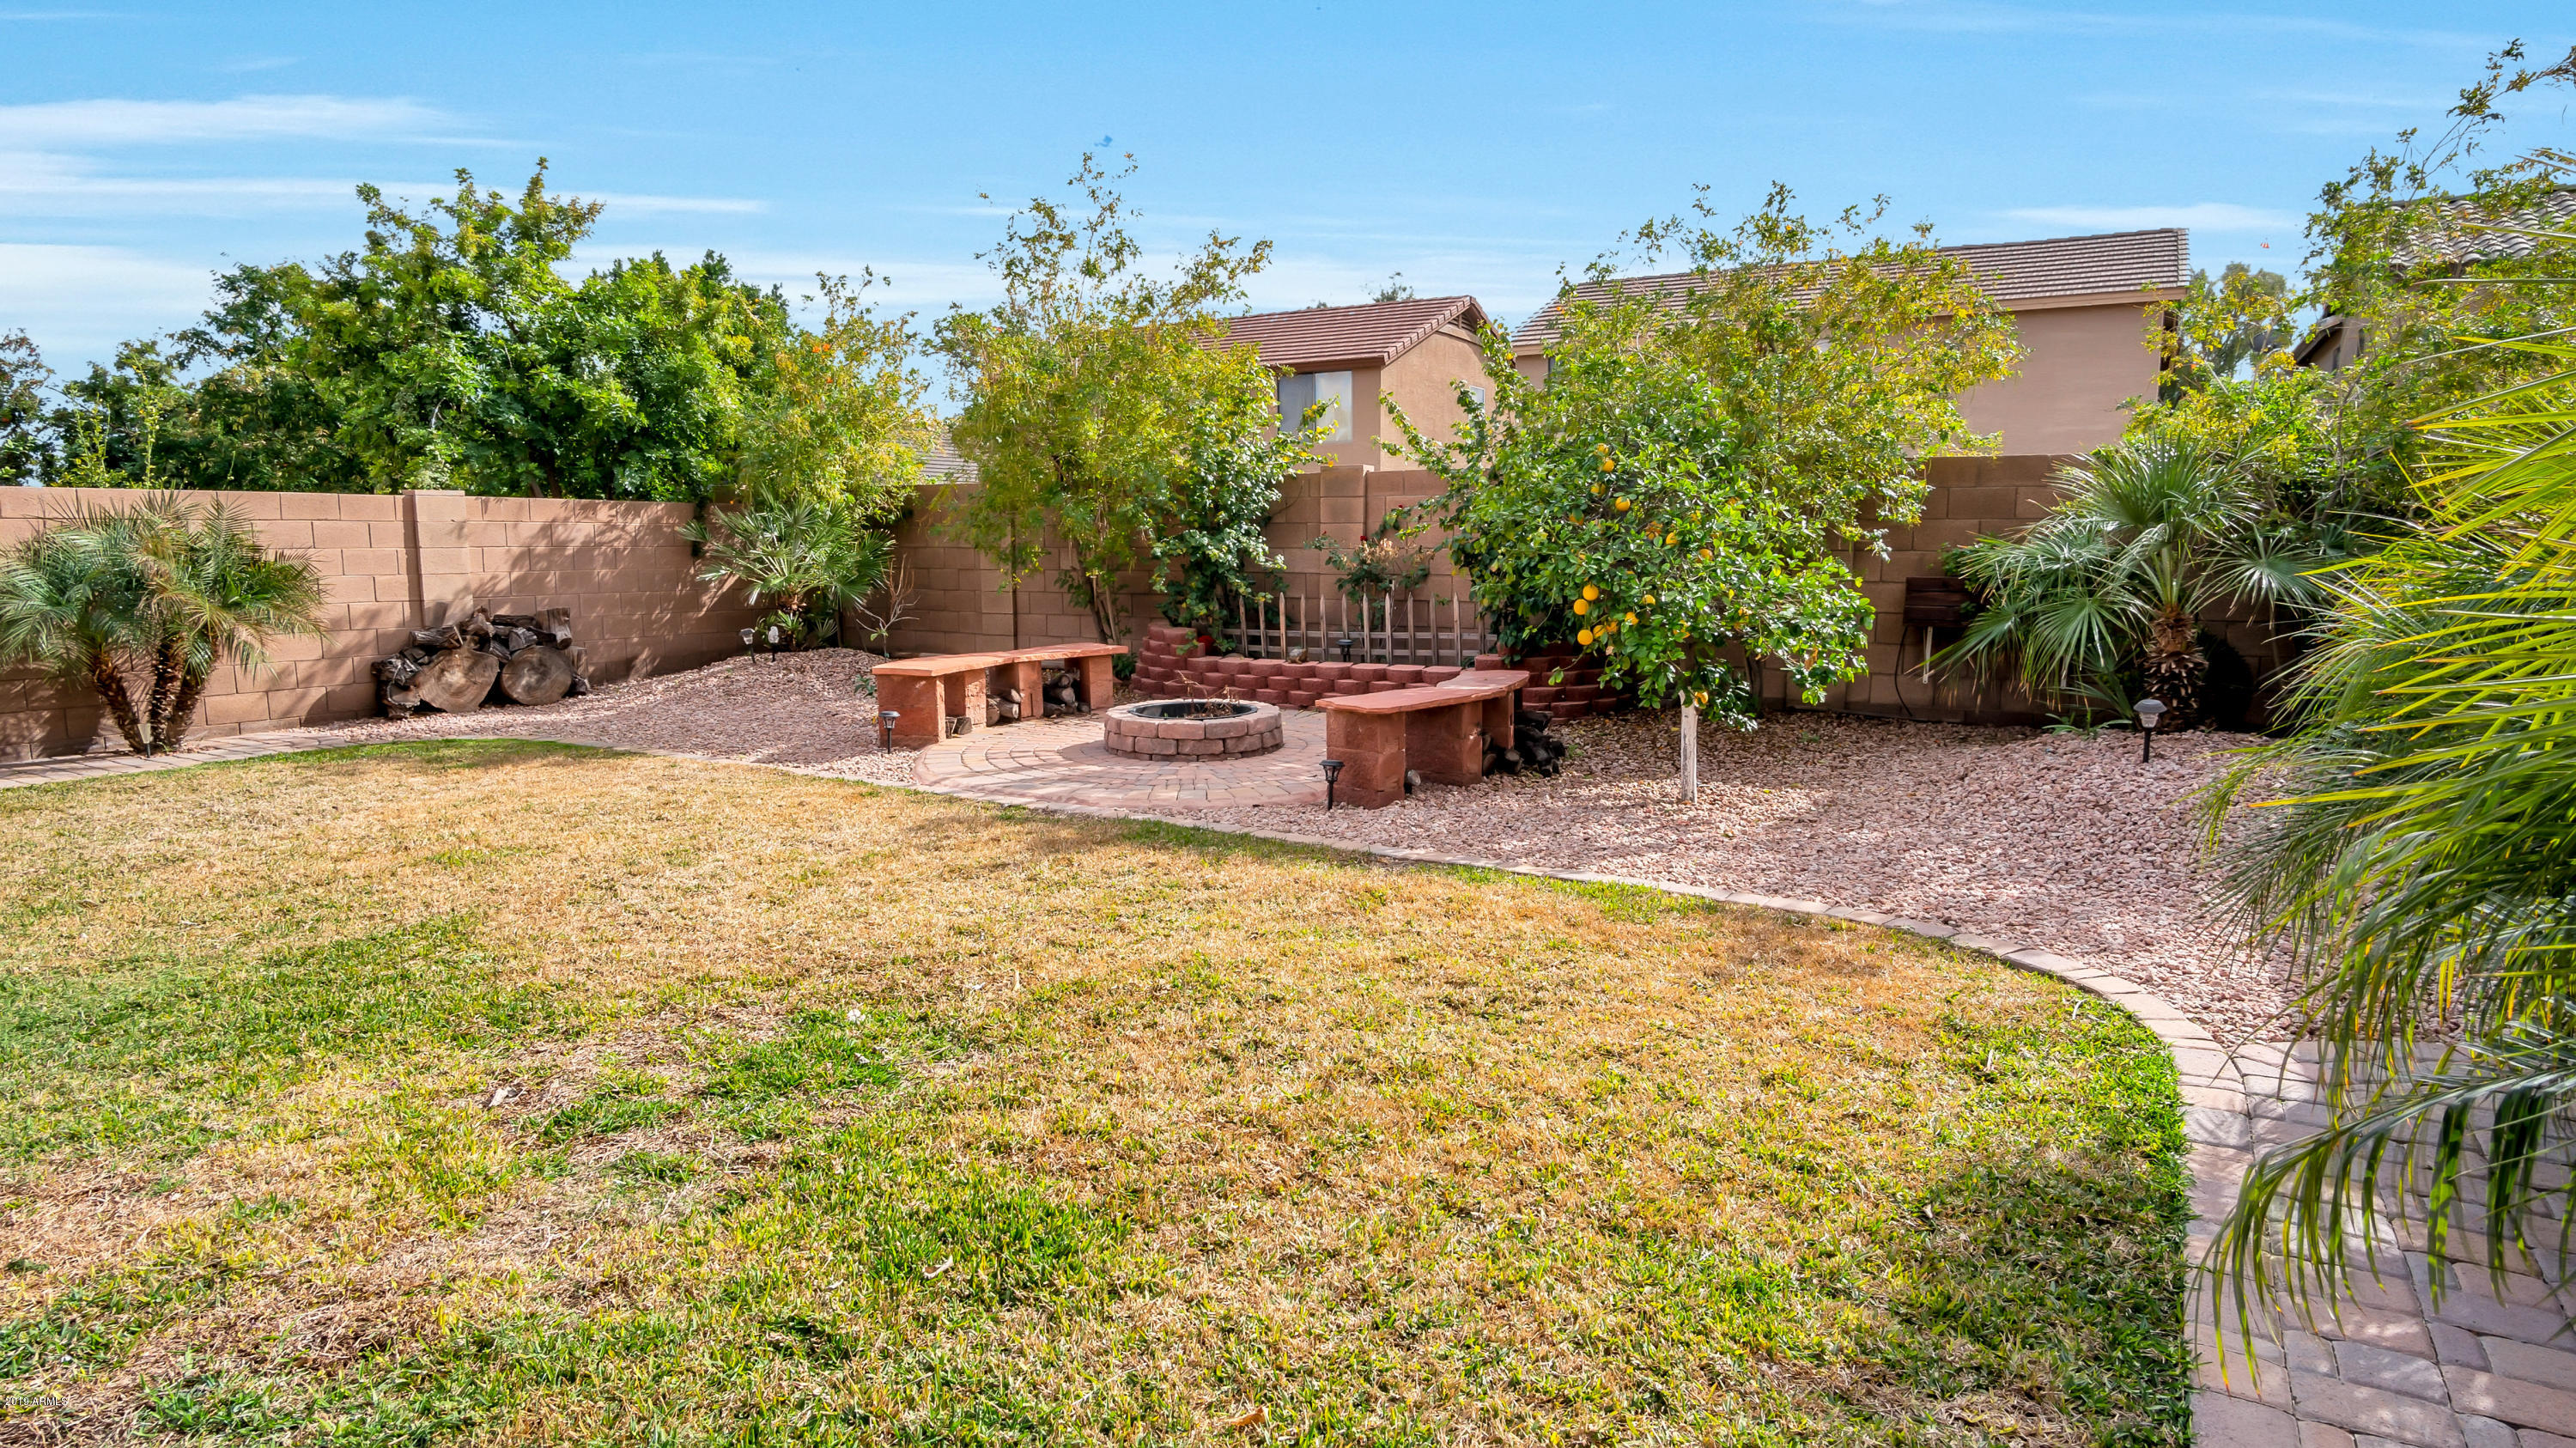 MLS 5878369 12319 W San Juan Avenue, Litchfield Park, AZ 85340 Litchfield Park AZ Wigwam Creek